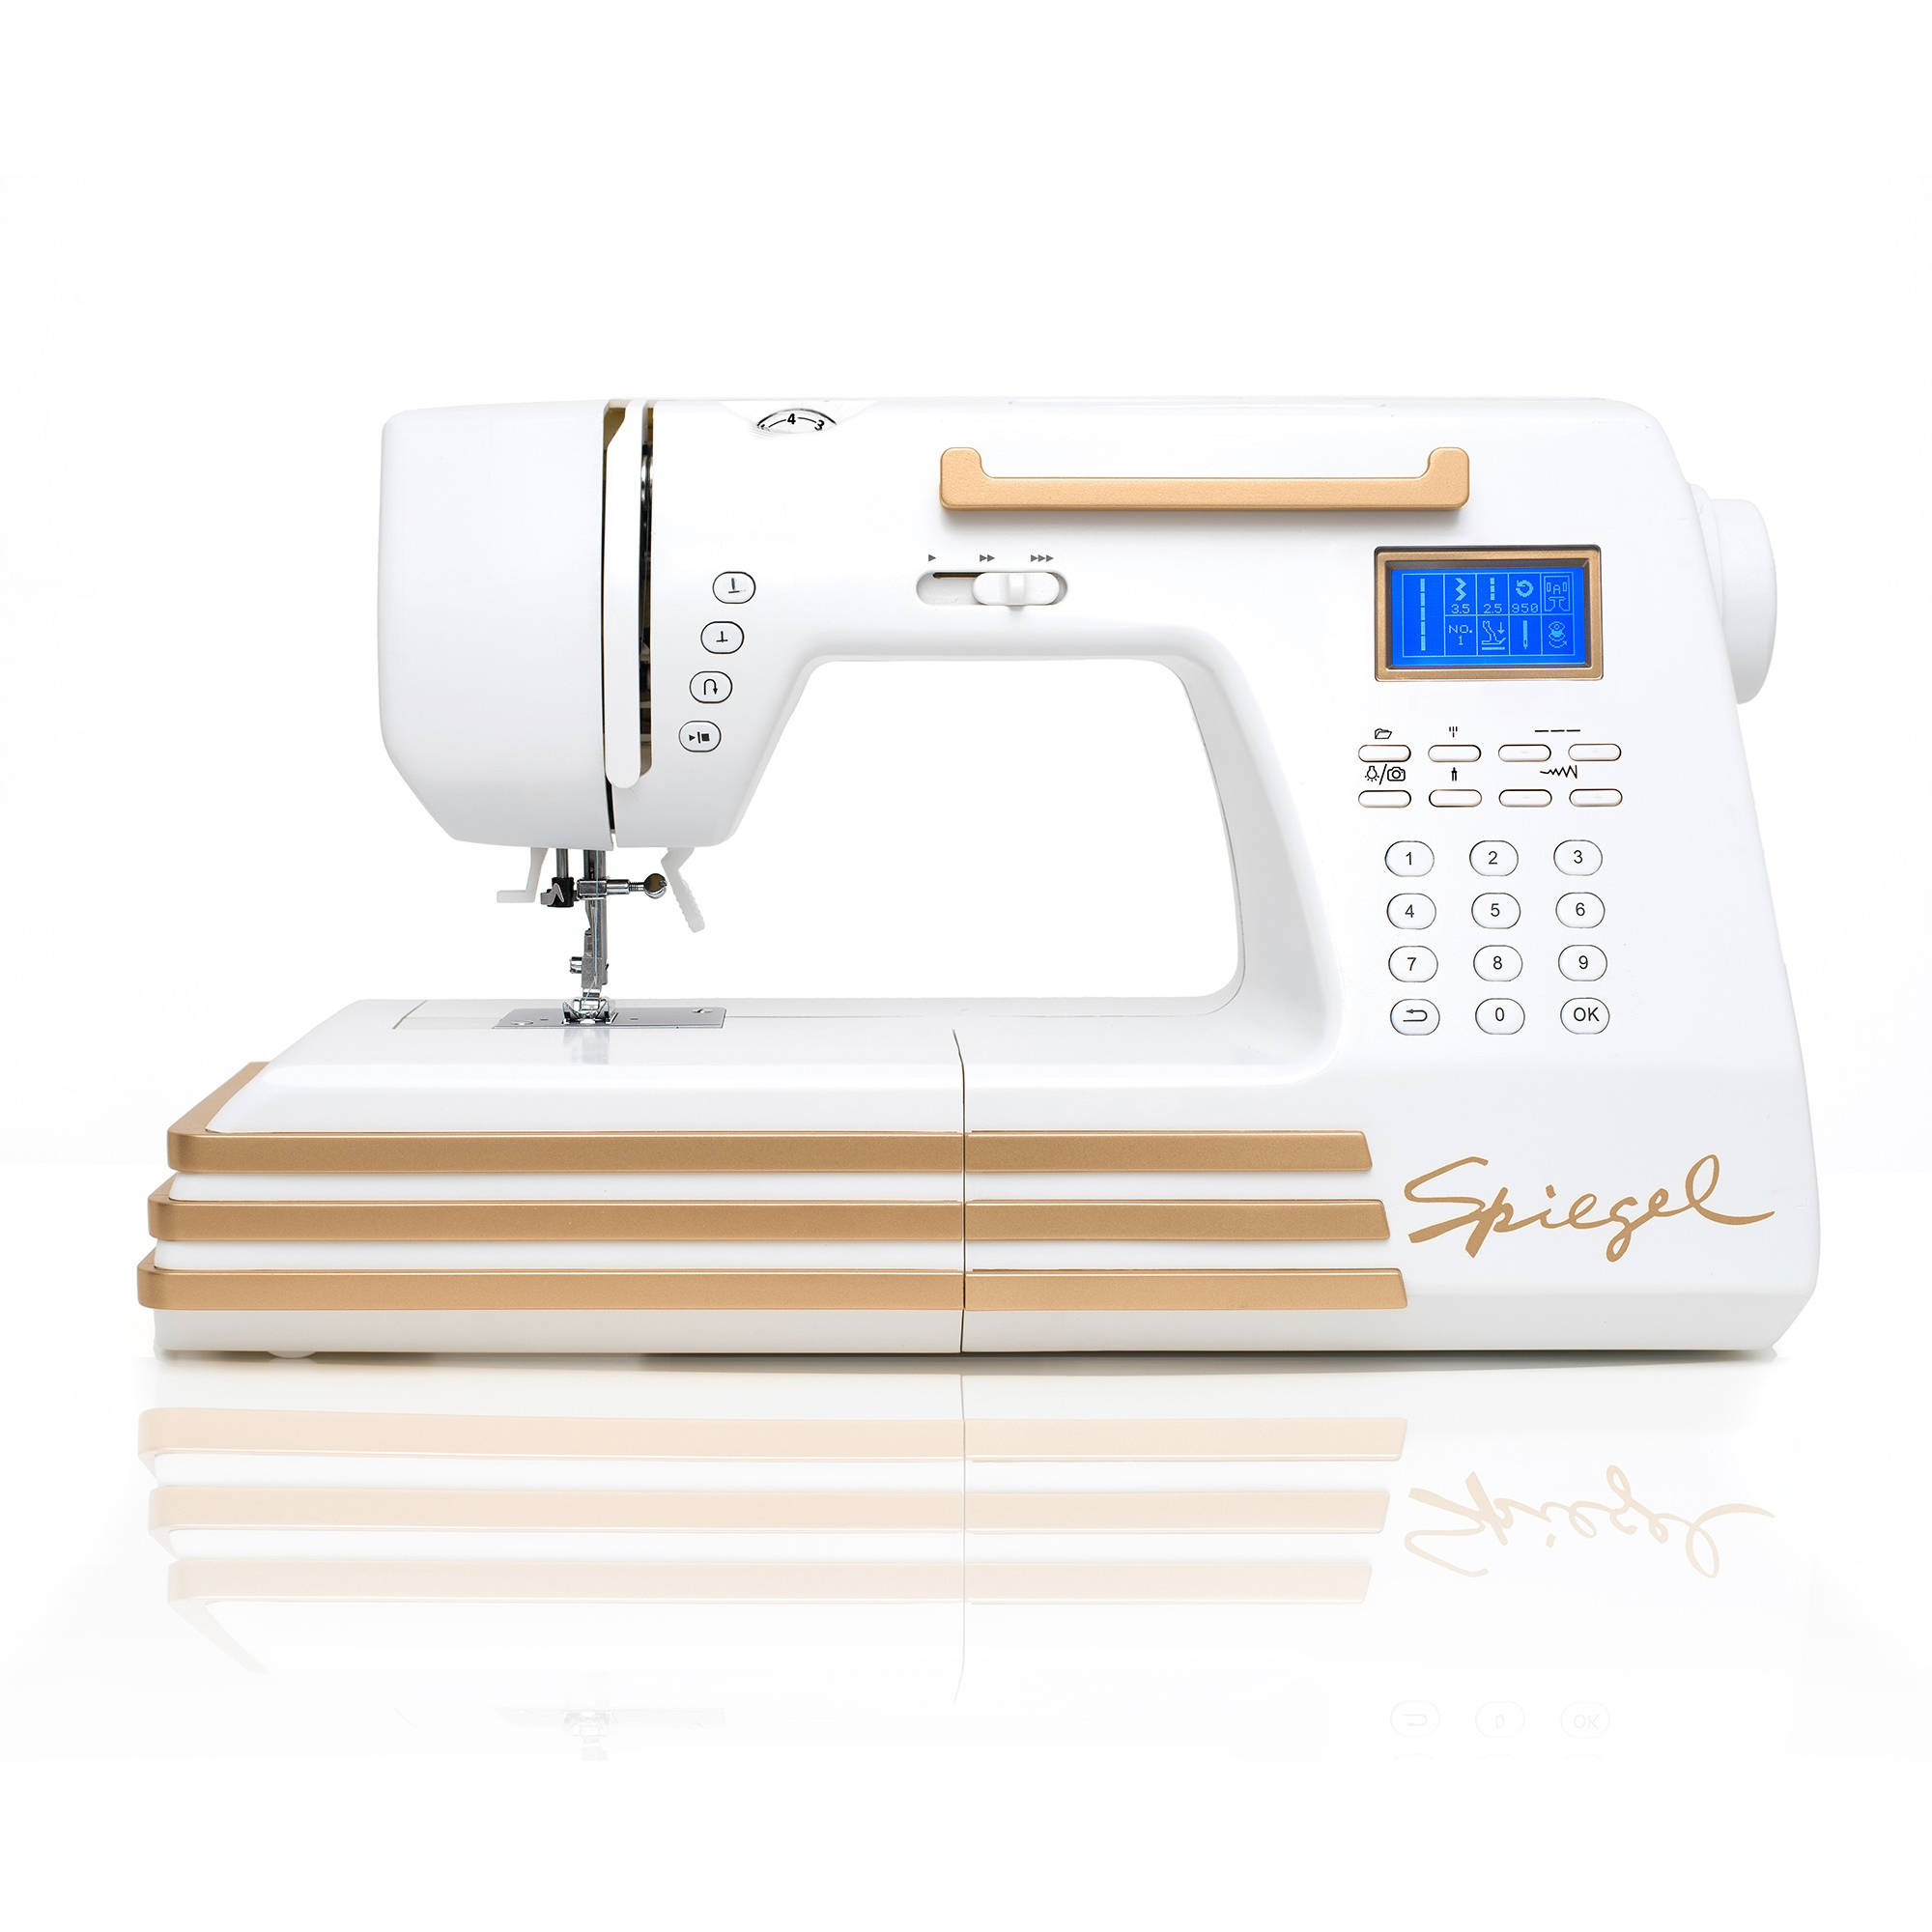 Spiegel Online Shop Spiegel 60609 Computerized Sewing Machine